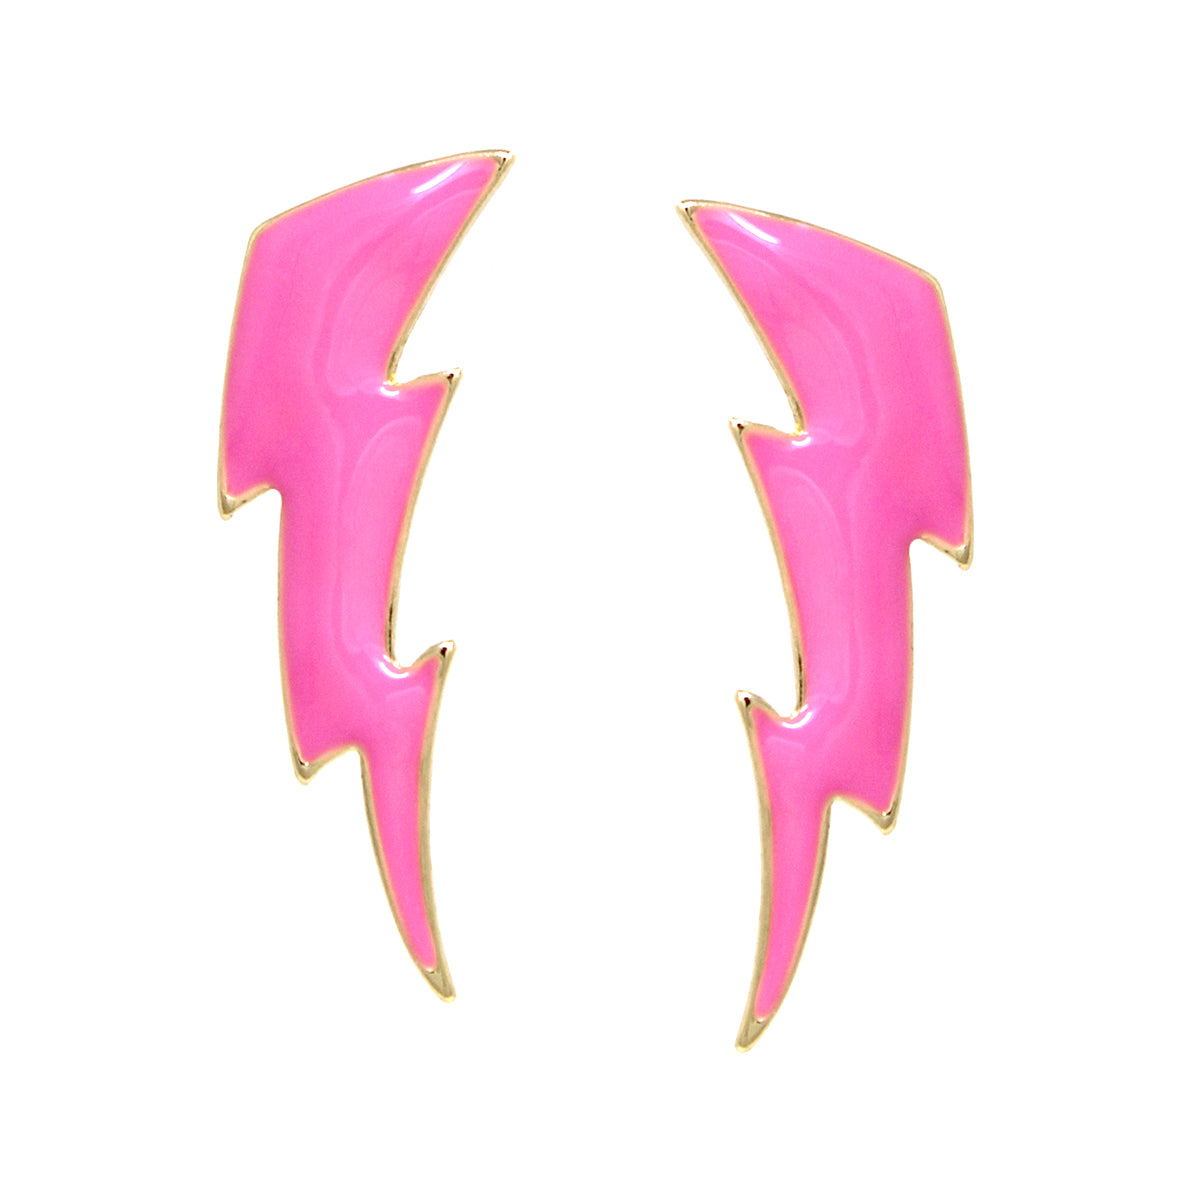 Enamel Glazed Thunder Stud Earrings